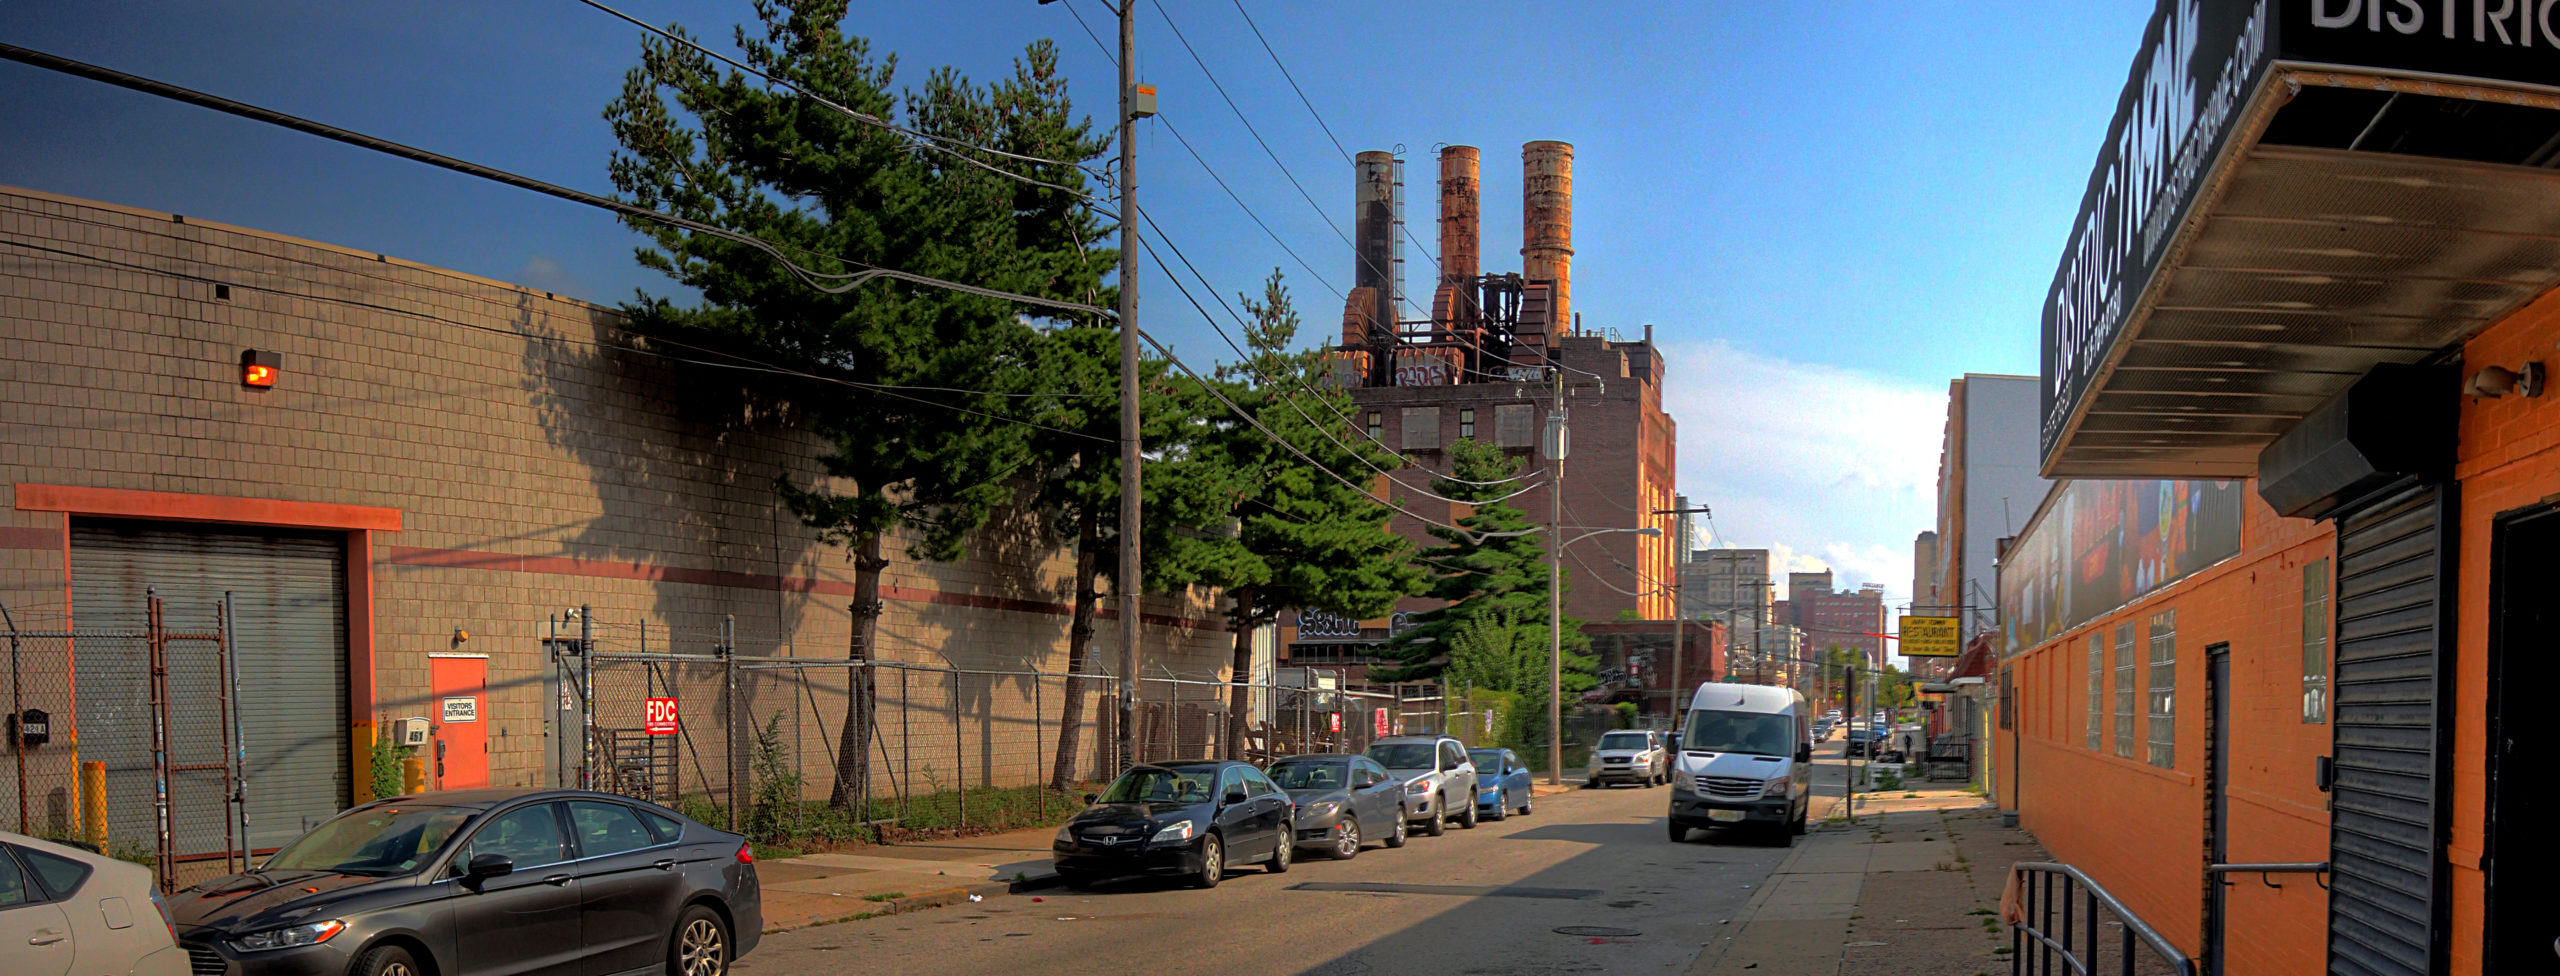 Willow Street Steam Plant View from 421 N 9th St Philadelphia, PA Copyright 2019, Bob Bruhin. All rights reserved.